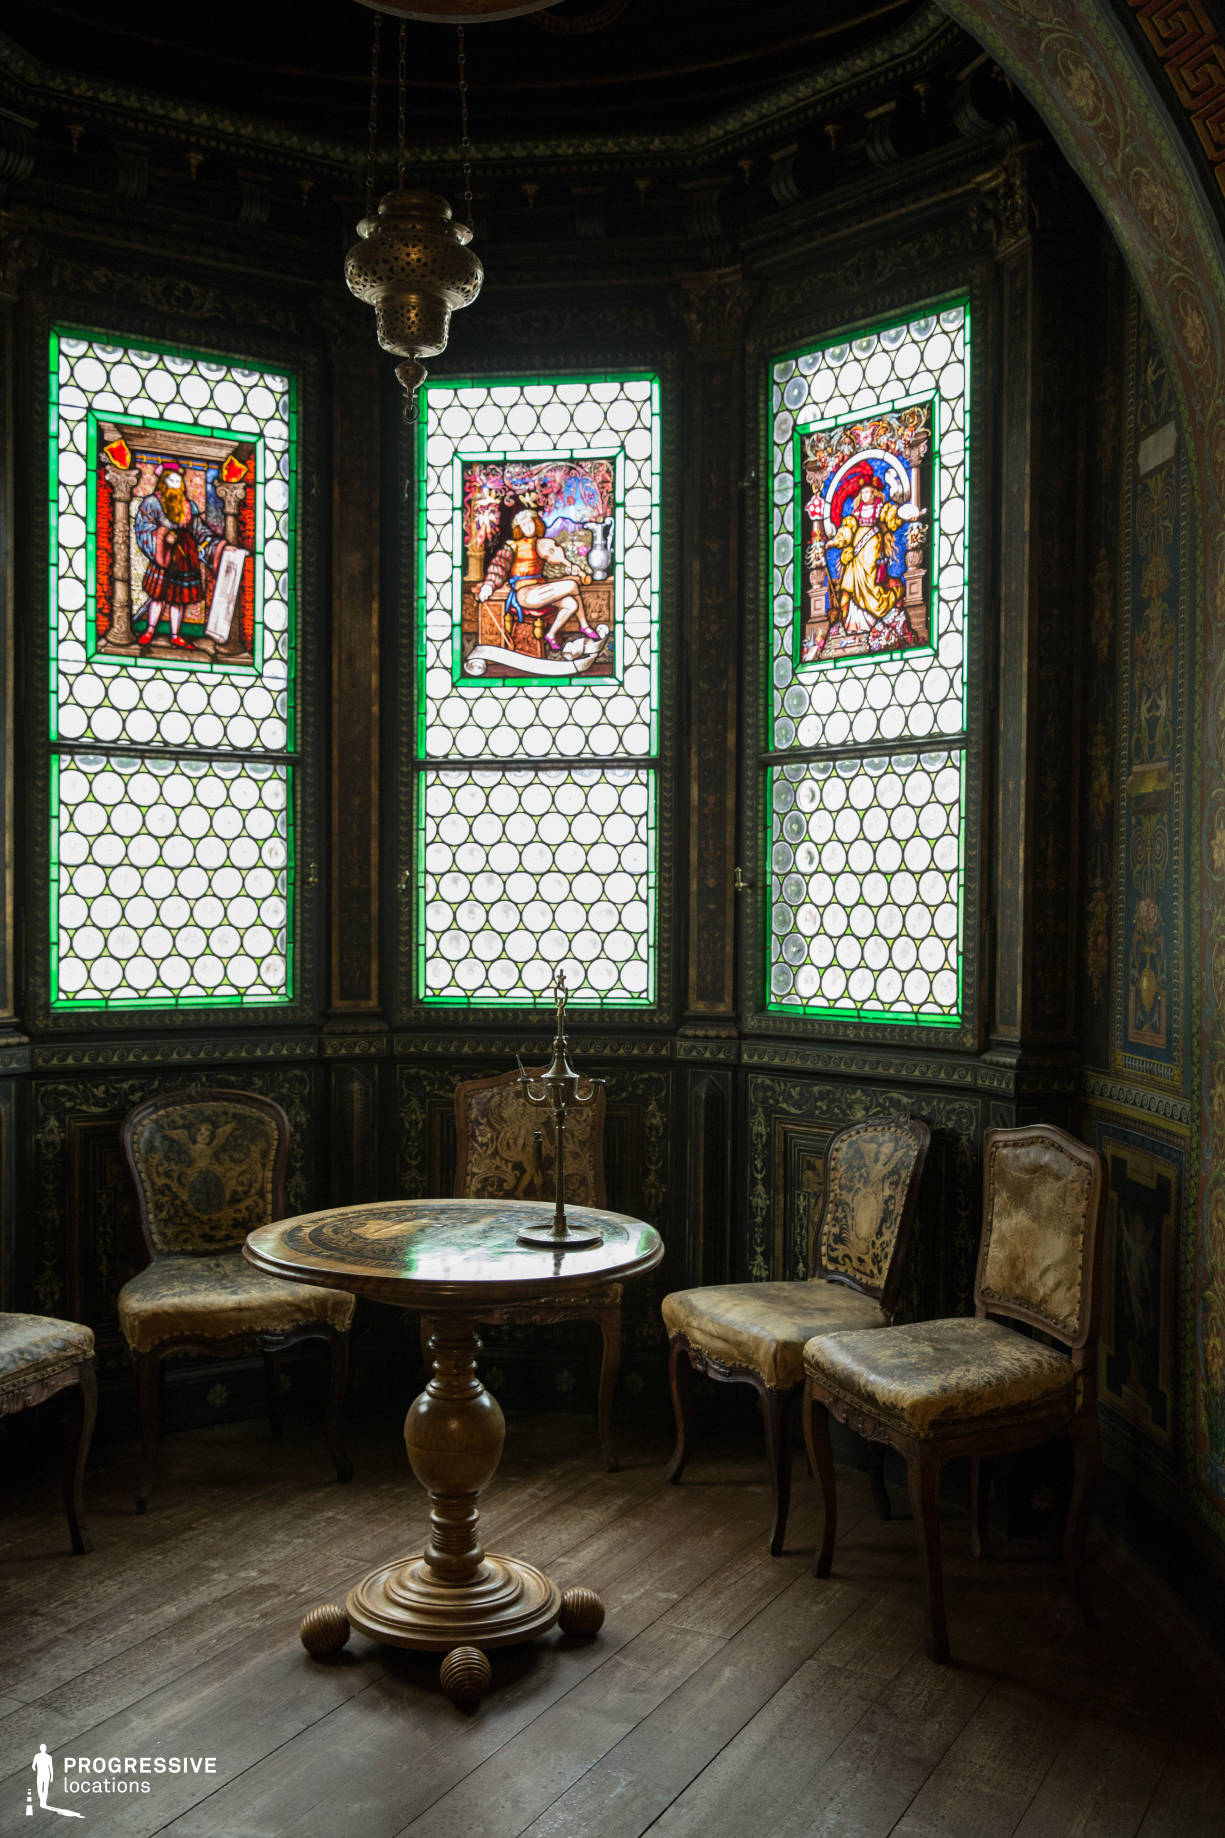 Locations in Hungary: Ornate Room (Detial), Storno House